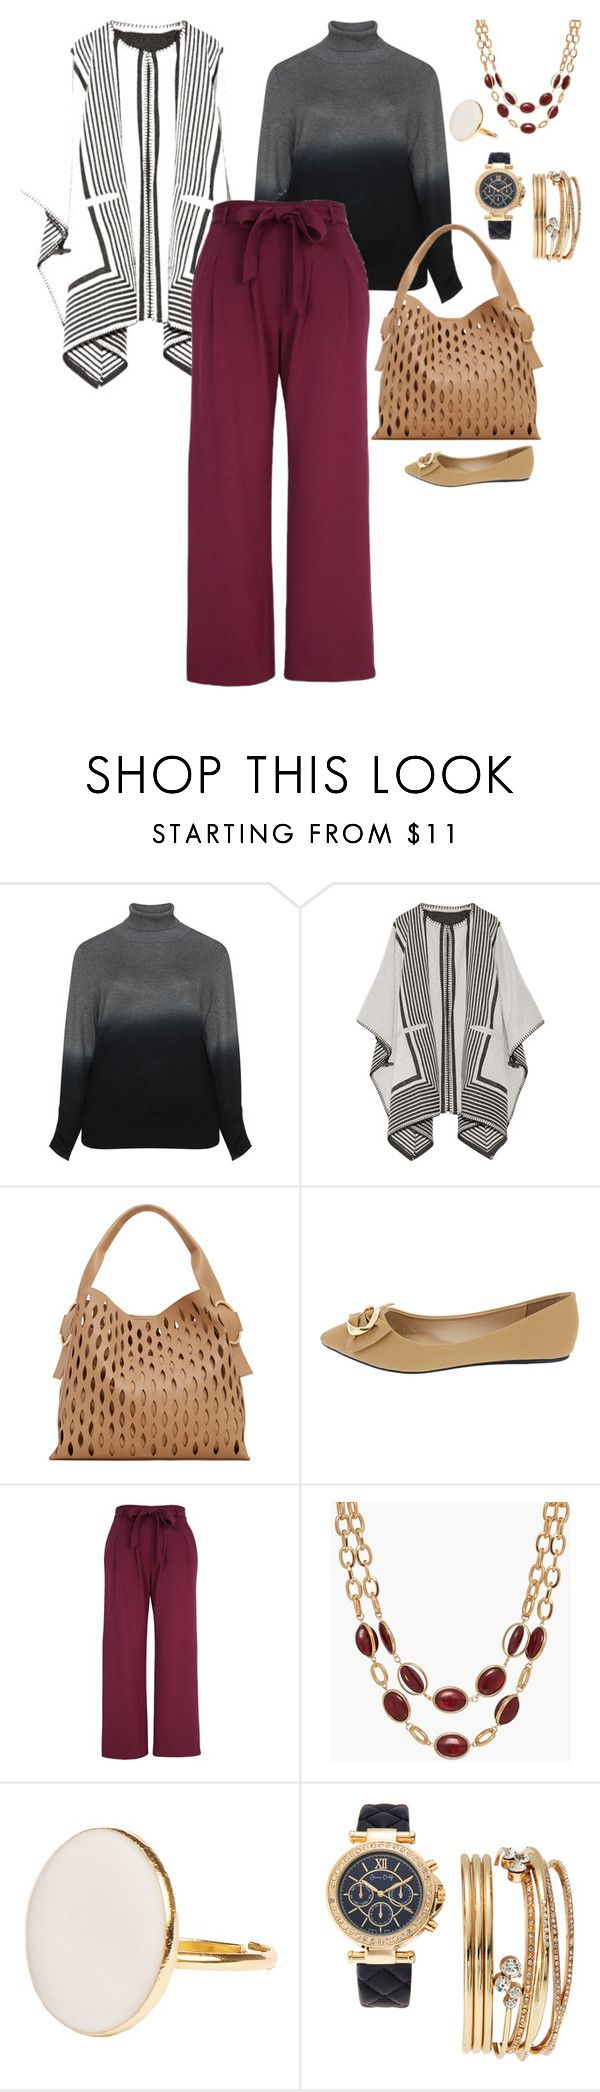 """Outfit #20"" by allieemet on Polyvore featuring M.i.h Jeans, MANGO, Melissa McCarthy Seven7, Talbots, Jessica Carlyle and plus size clothing"